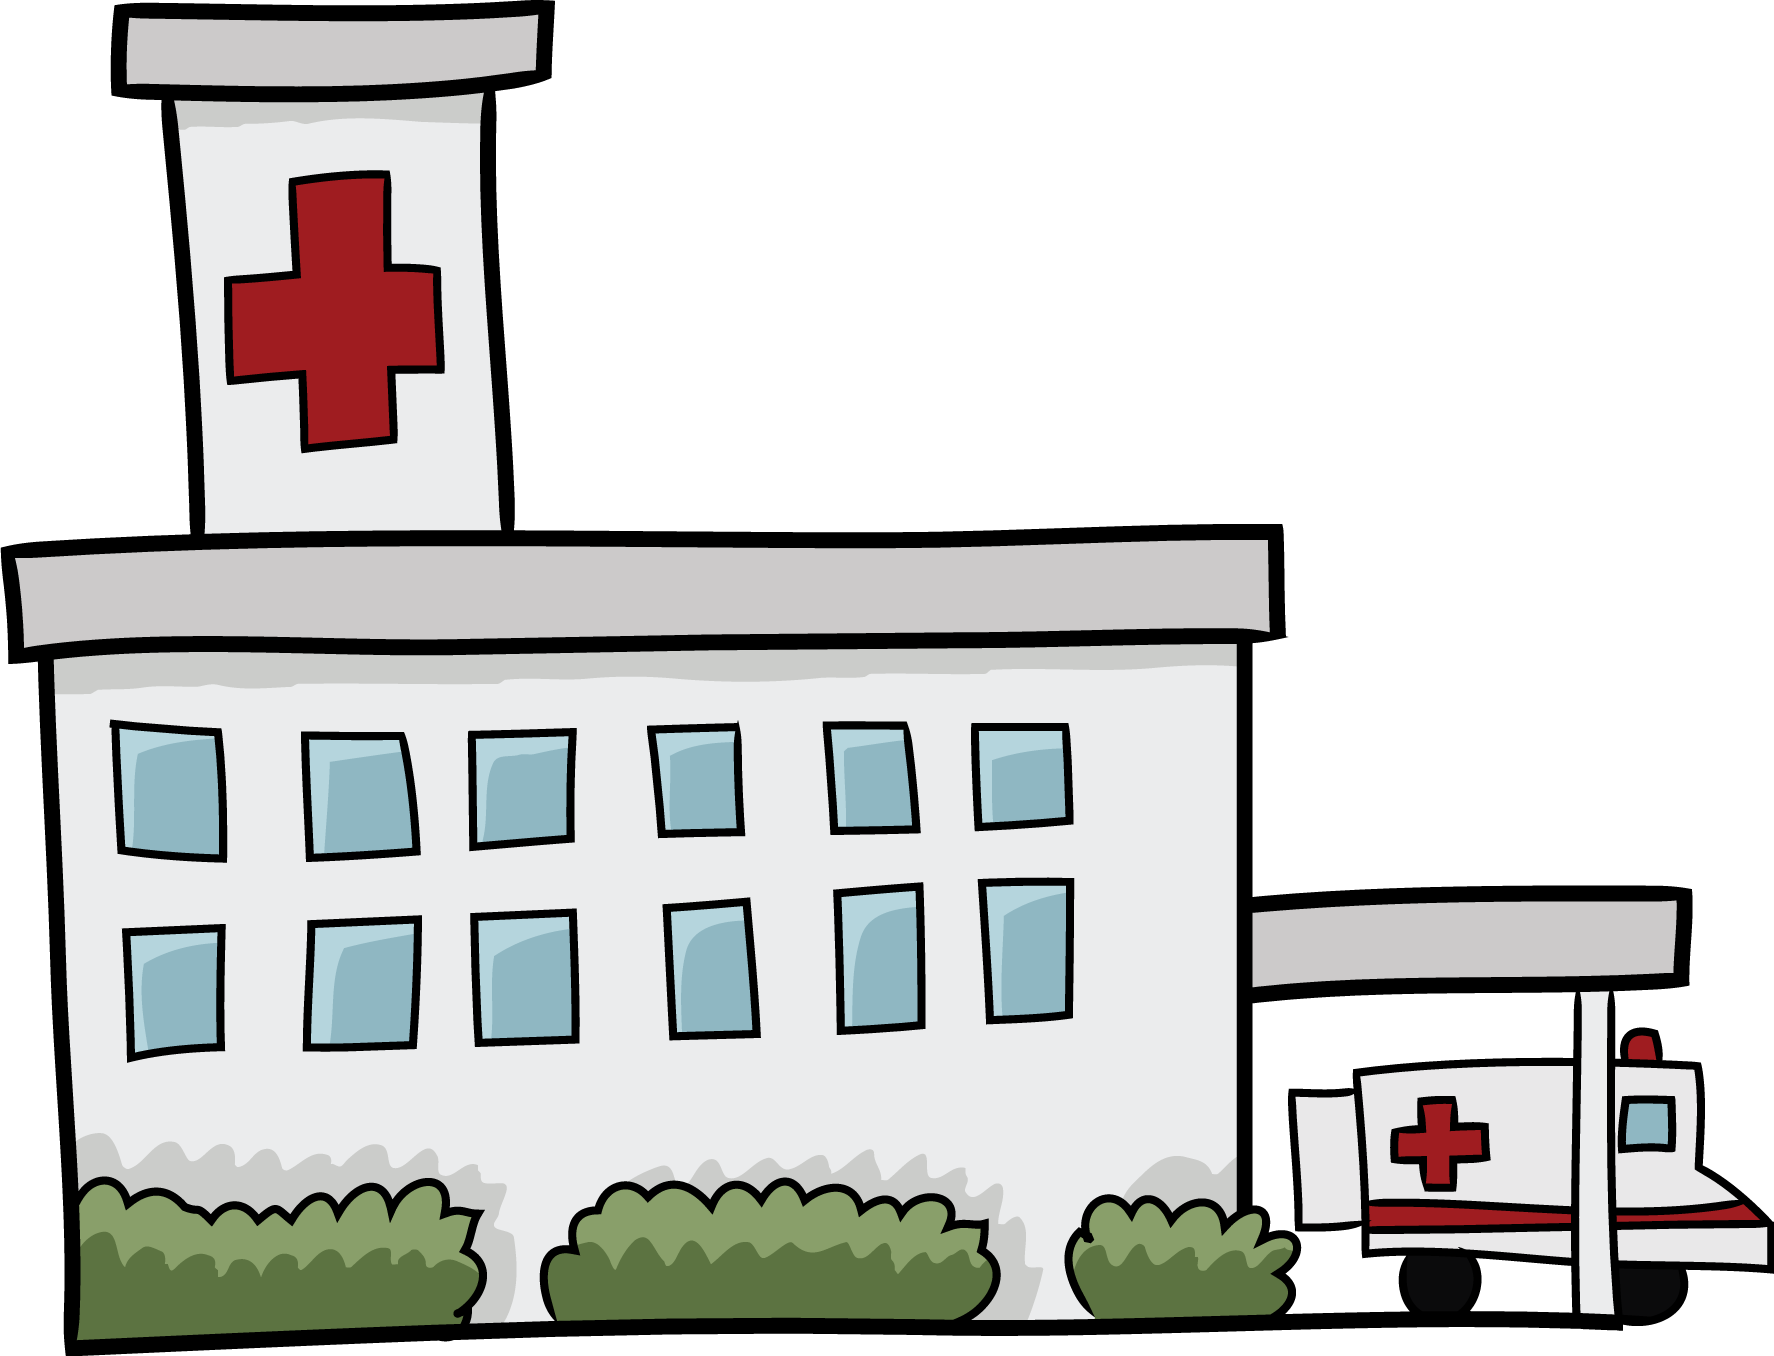 Free Cartoon Hospital Clip Art u0026middot; hospital9